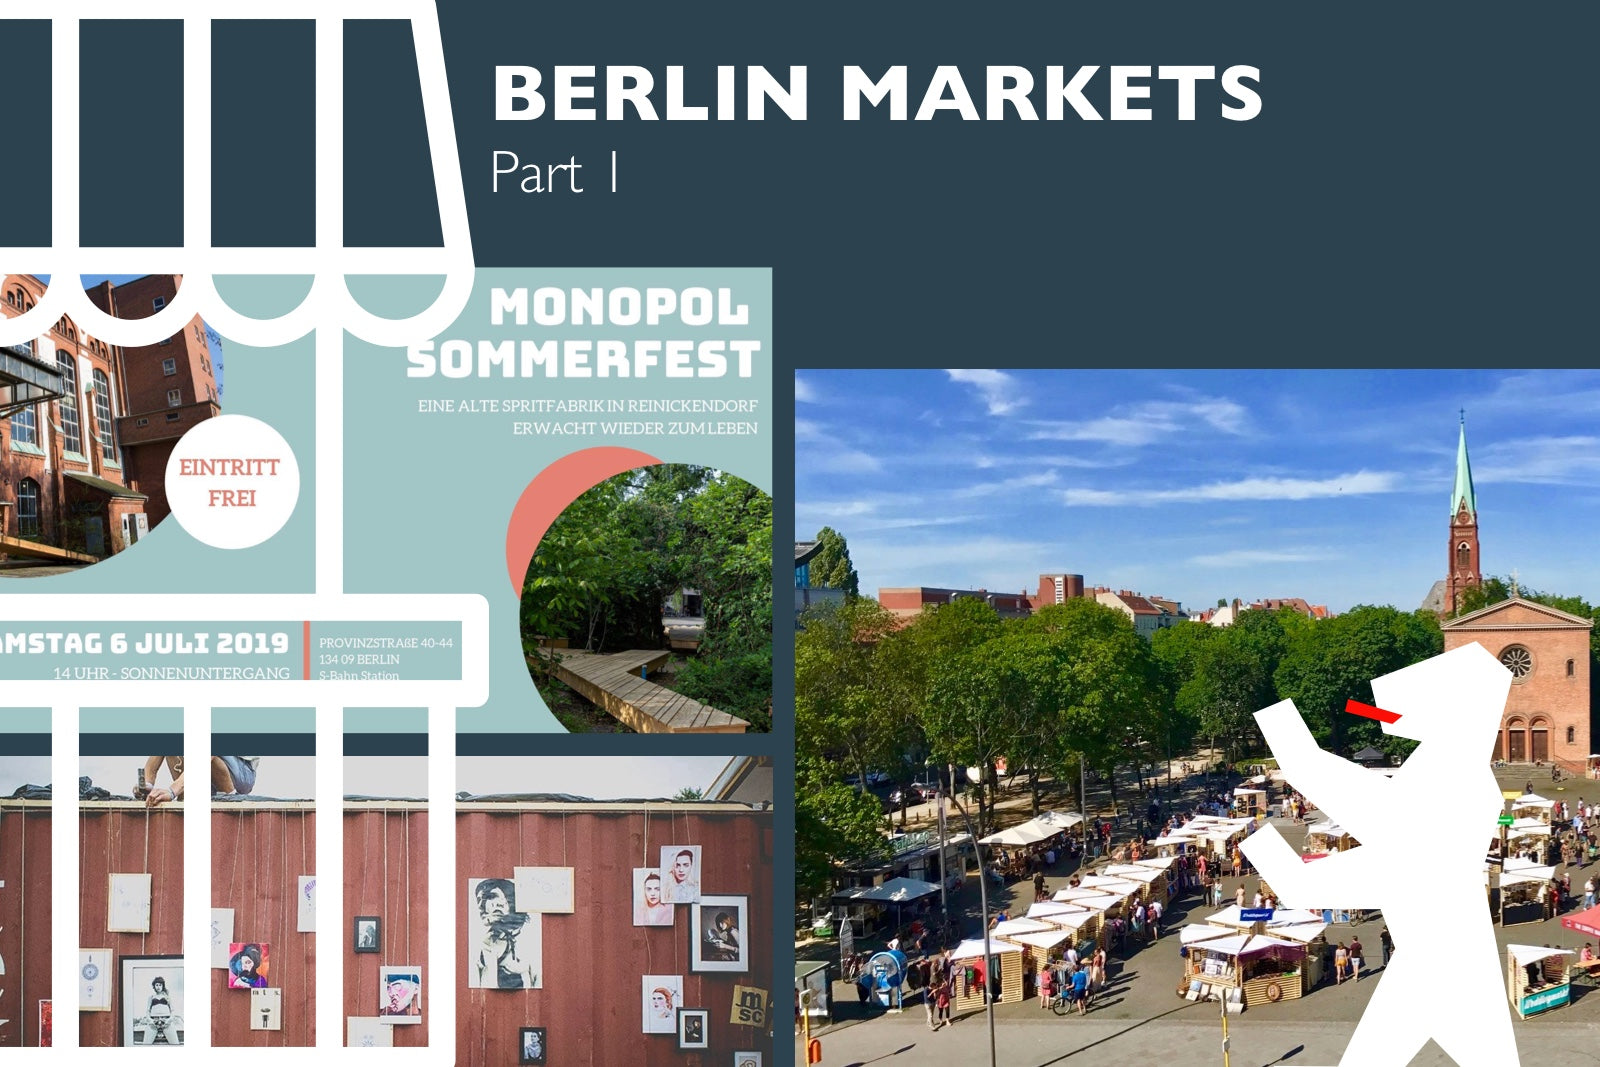 Berliner markets - part 1